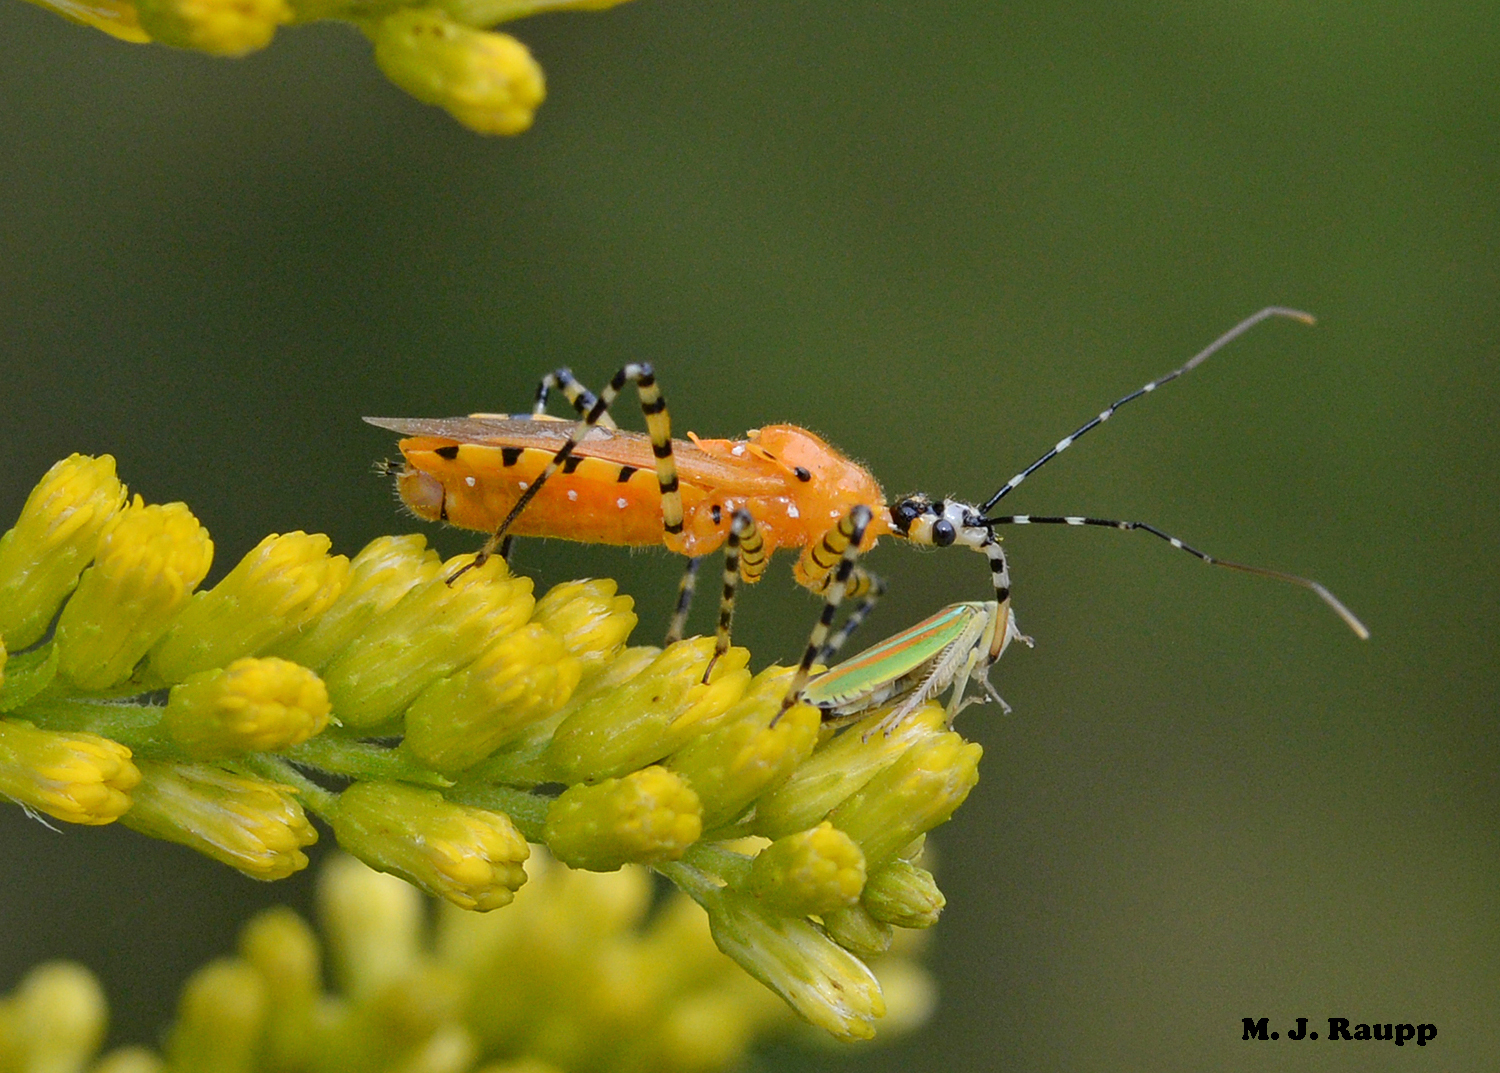 This orange assassin bug wearing black jailhouse stripes delivered a trick - not a treat - to this hapless leafhopper.